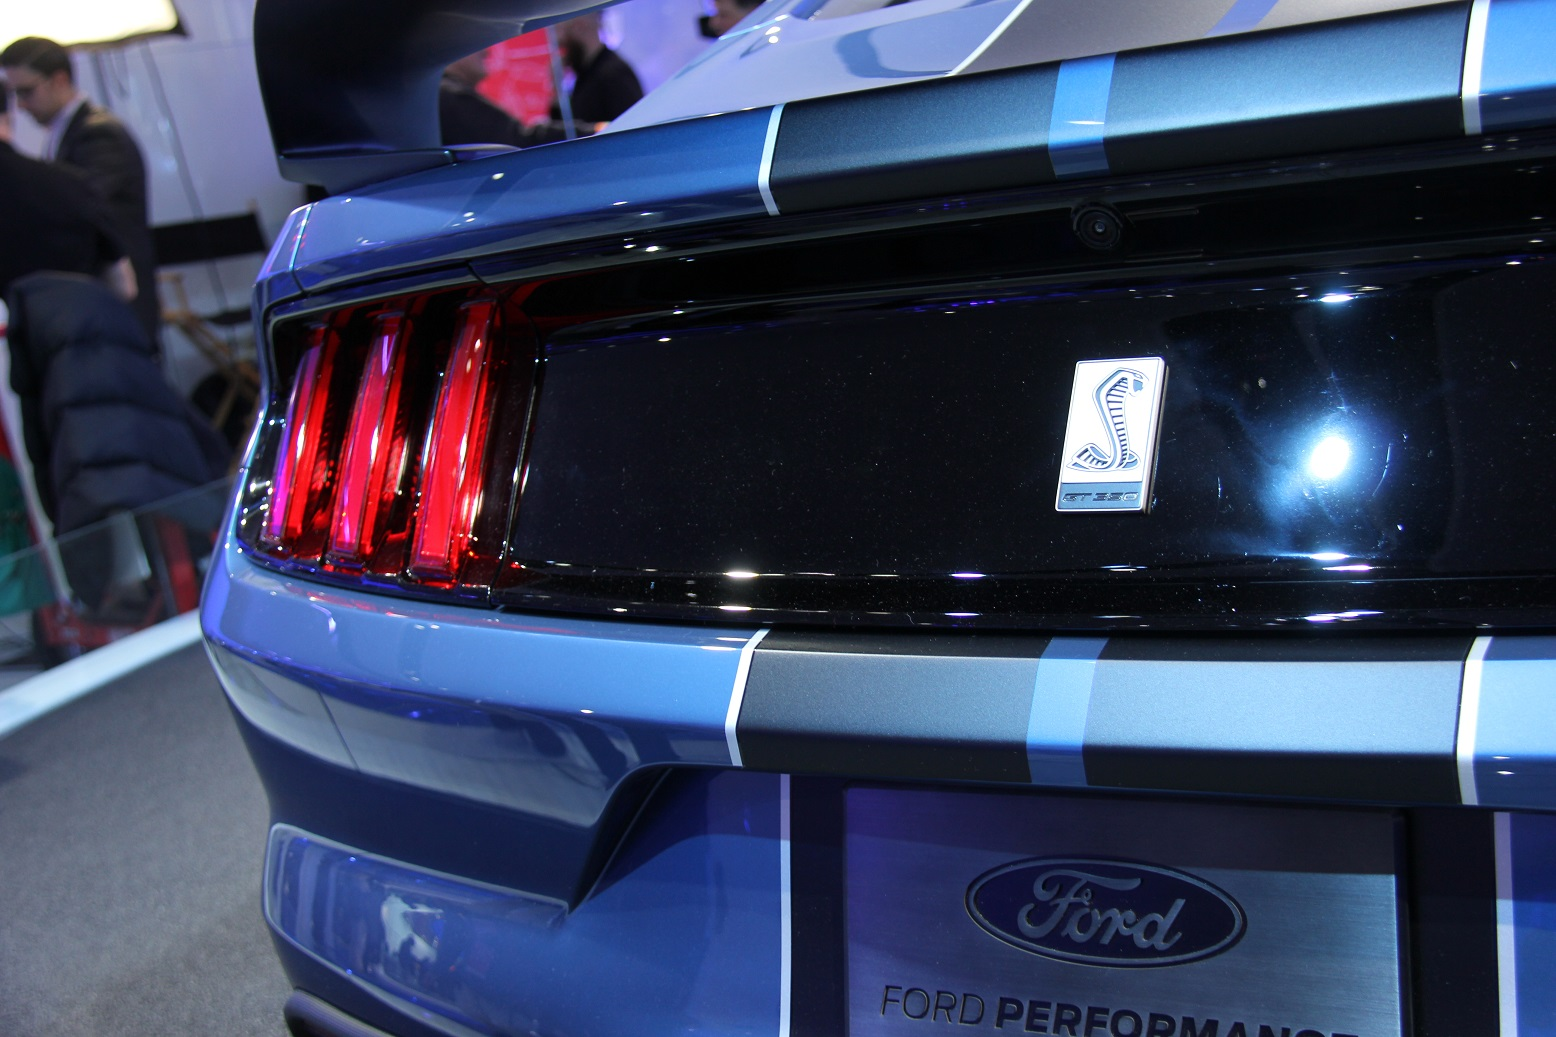 2016 Ford Mustang Shelby Gt350r Rear Lamp (Photo 36 of 47)